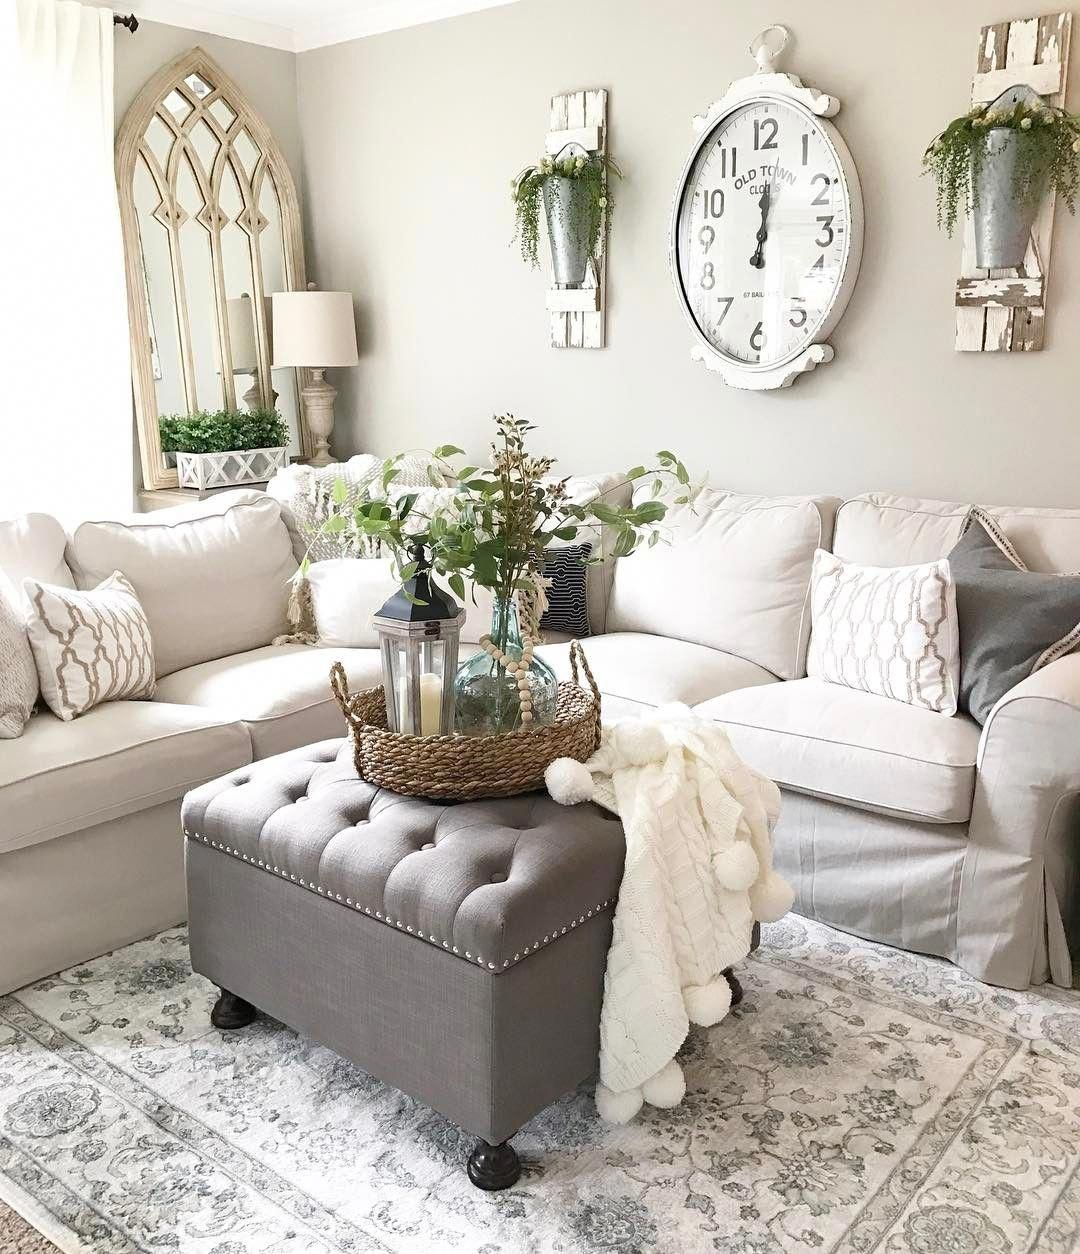 18+ Surprising Small Living Room Remodel Floor Plans Ideas images